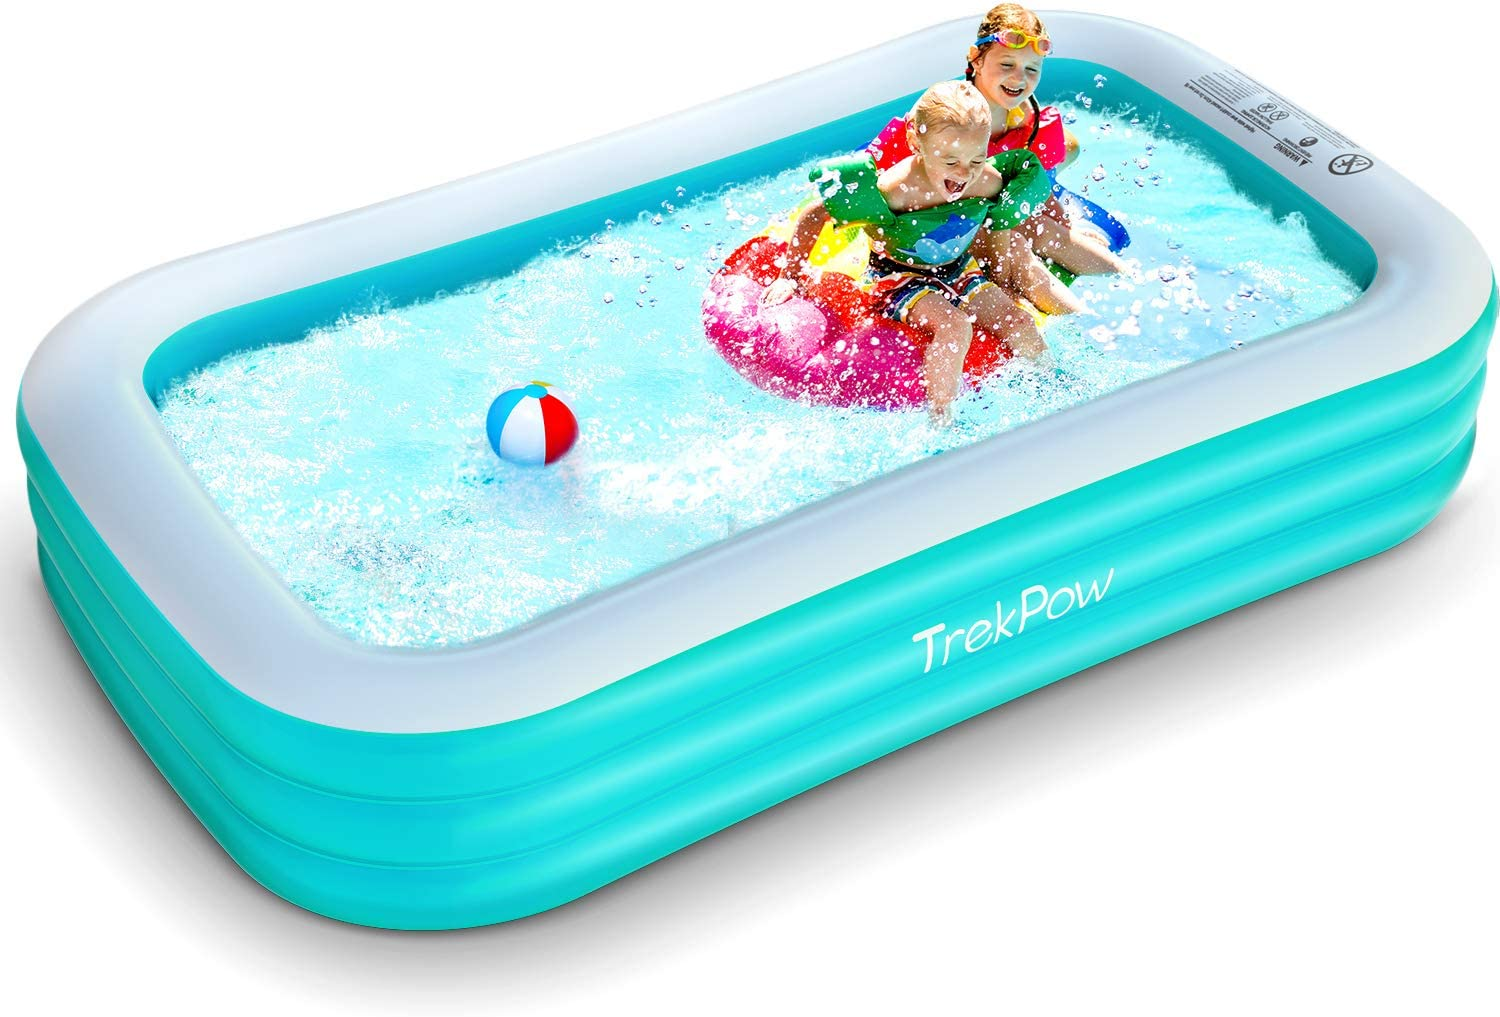 TrekPow Inflatable Swimming Pool